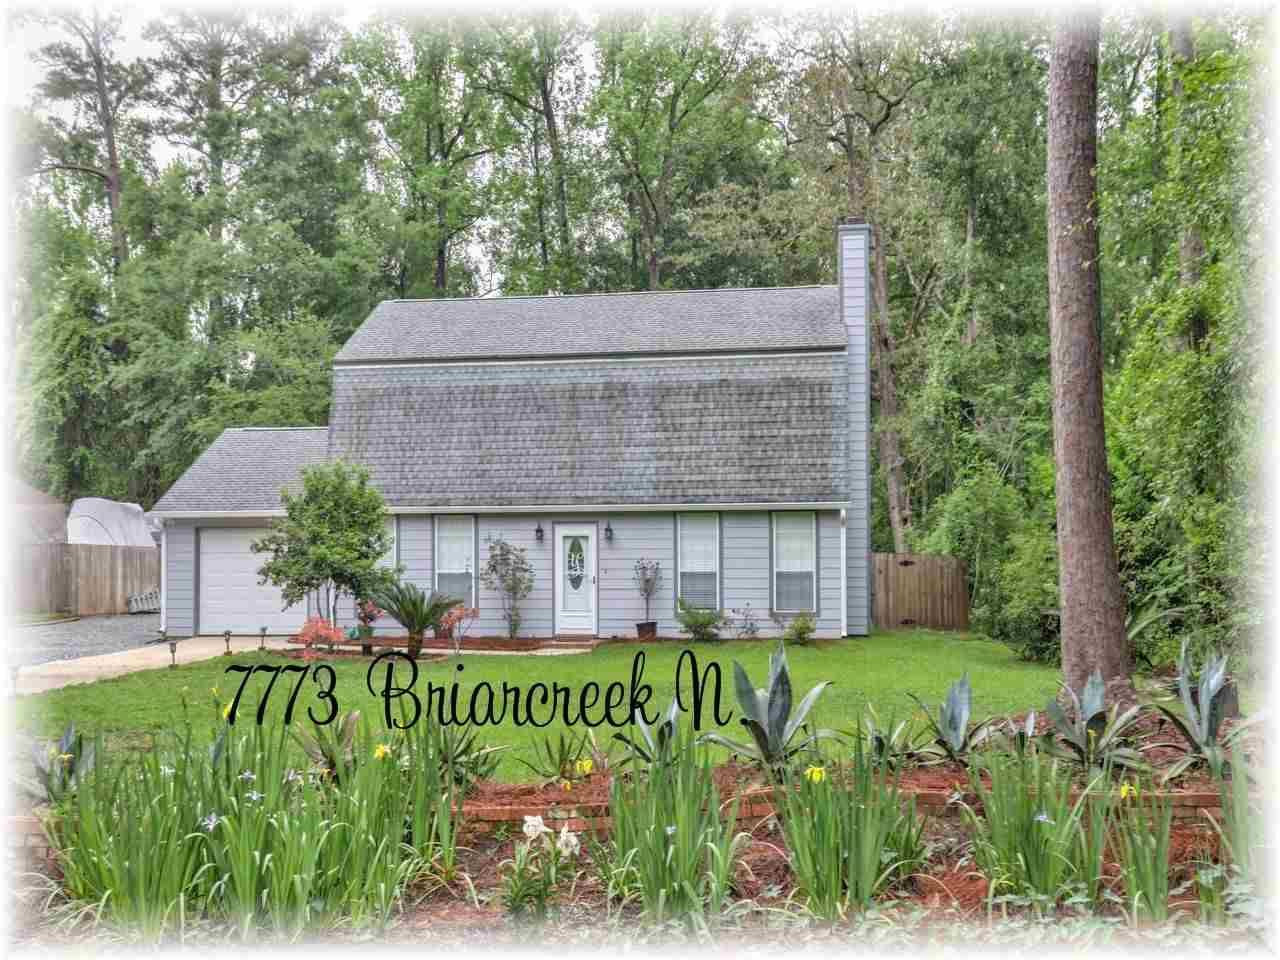 Photo of 7773 BRIARCREEK RD N, TALLAHASSEE, FL 32312 (MLS # 331041)